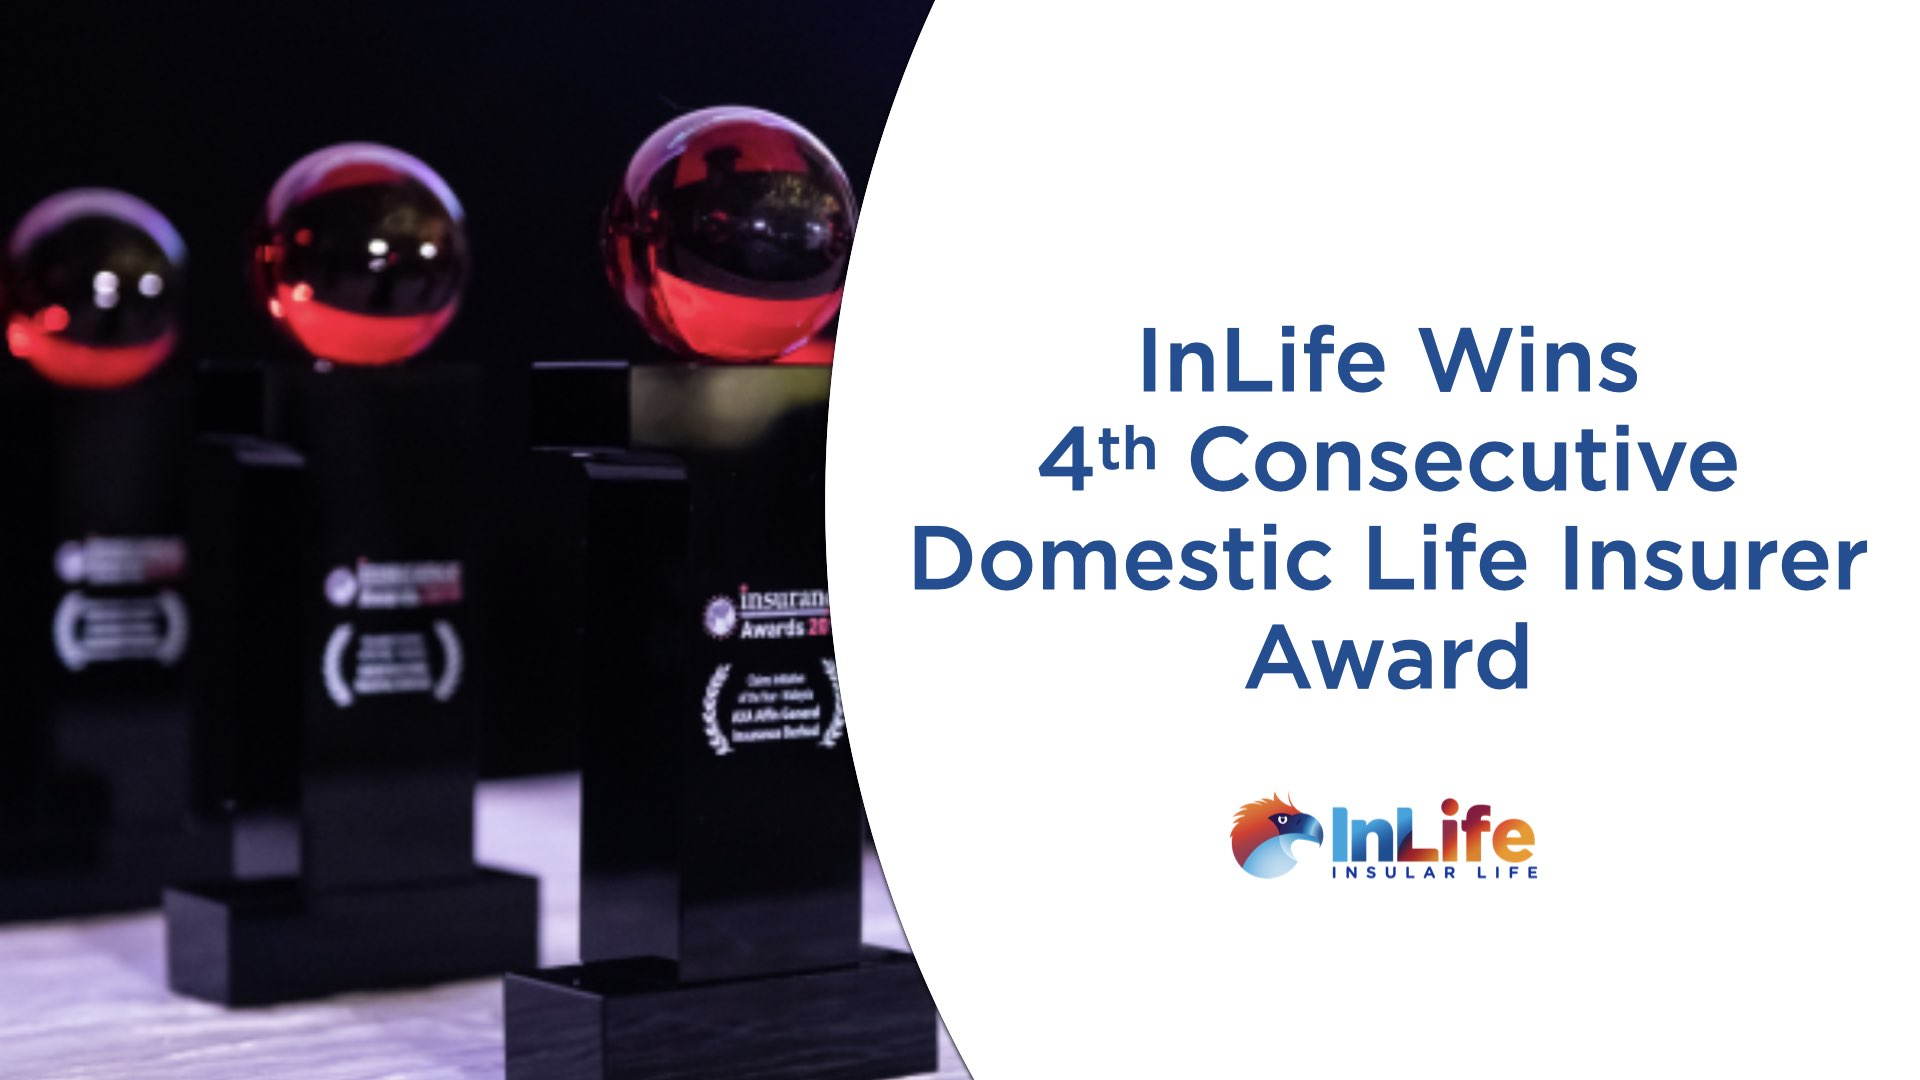 InLife wins 4th consecutive Domestic Life Insurer Award from Insurance Asia Awards